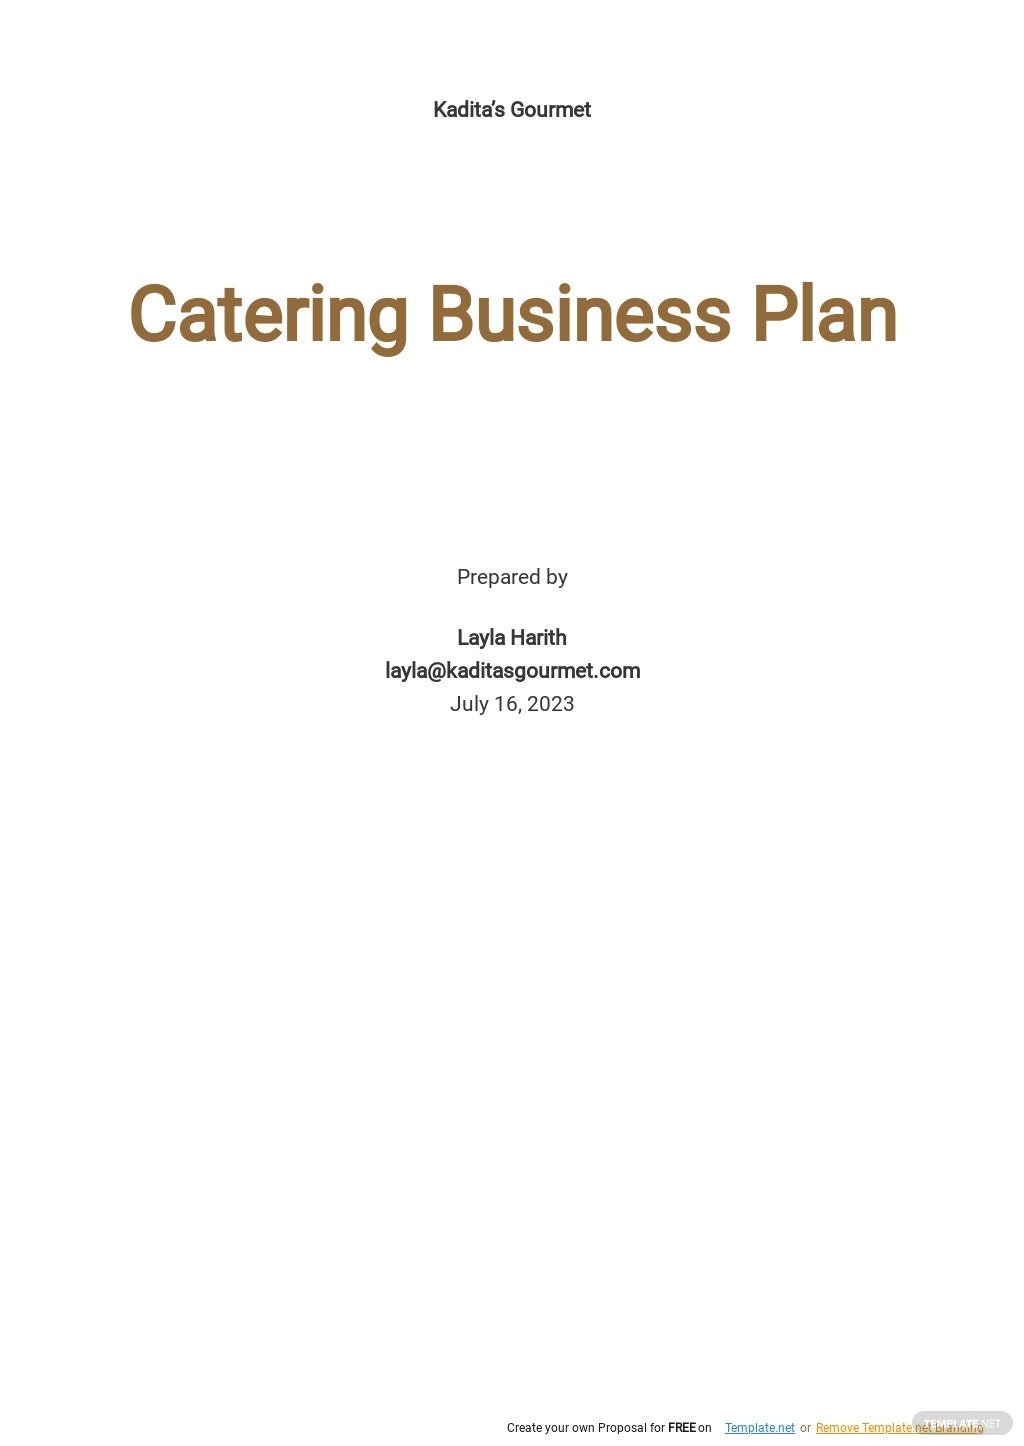 Catering Business Plan Template.jpe